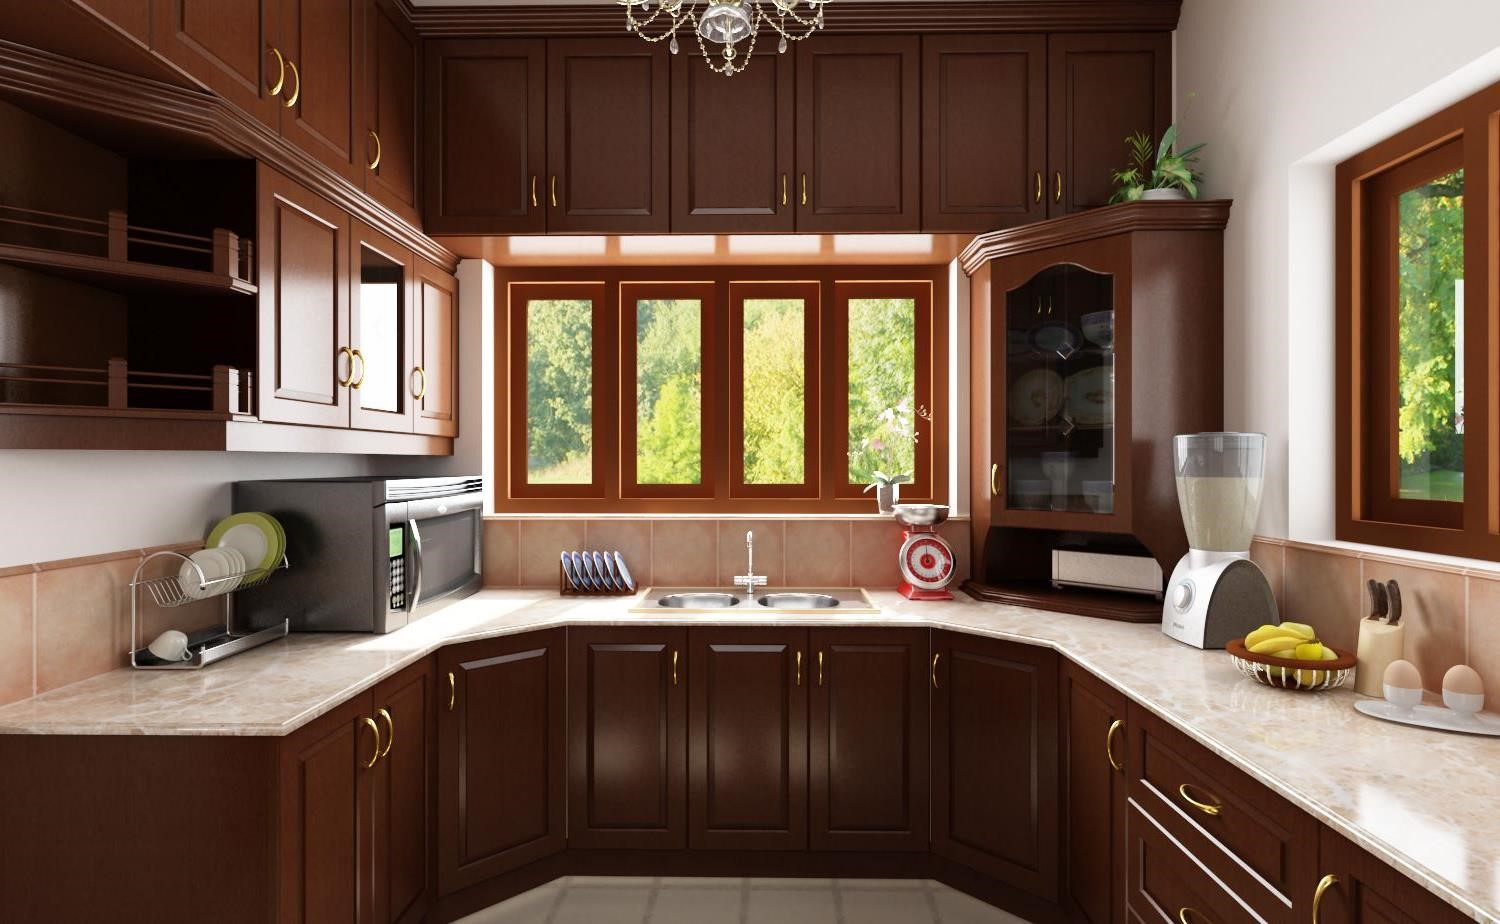 Kitchen Design Ideas Traditional Traditional Kitchen Design On Formality And Functionality